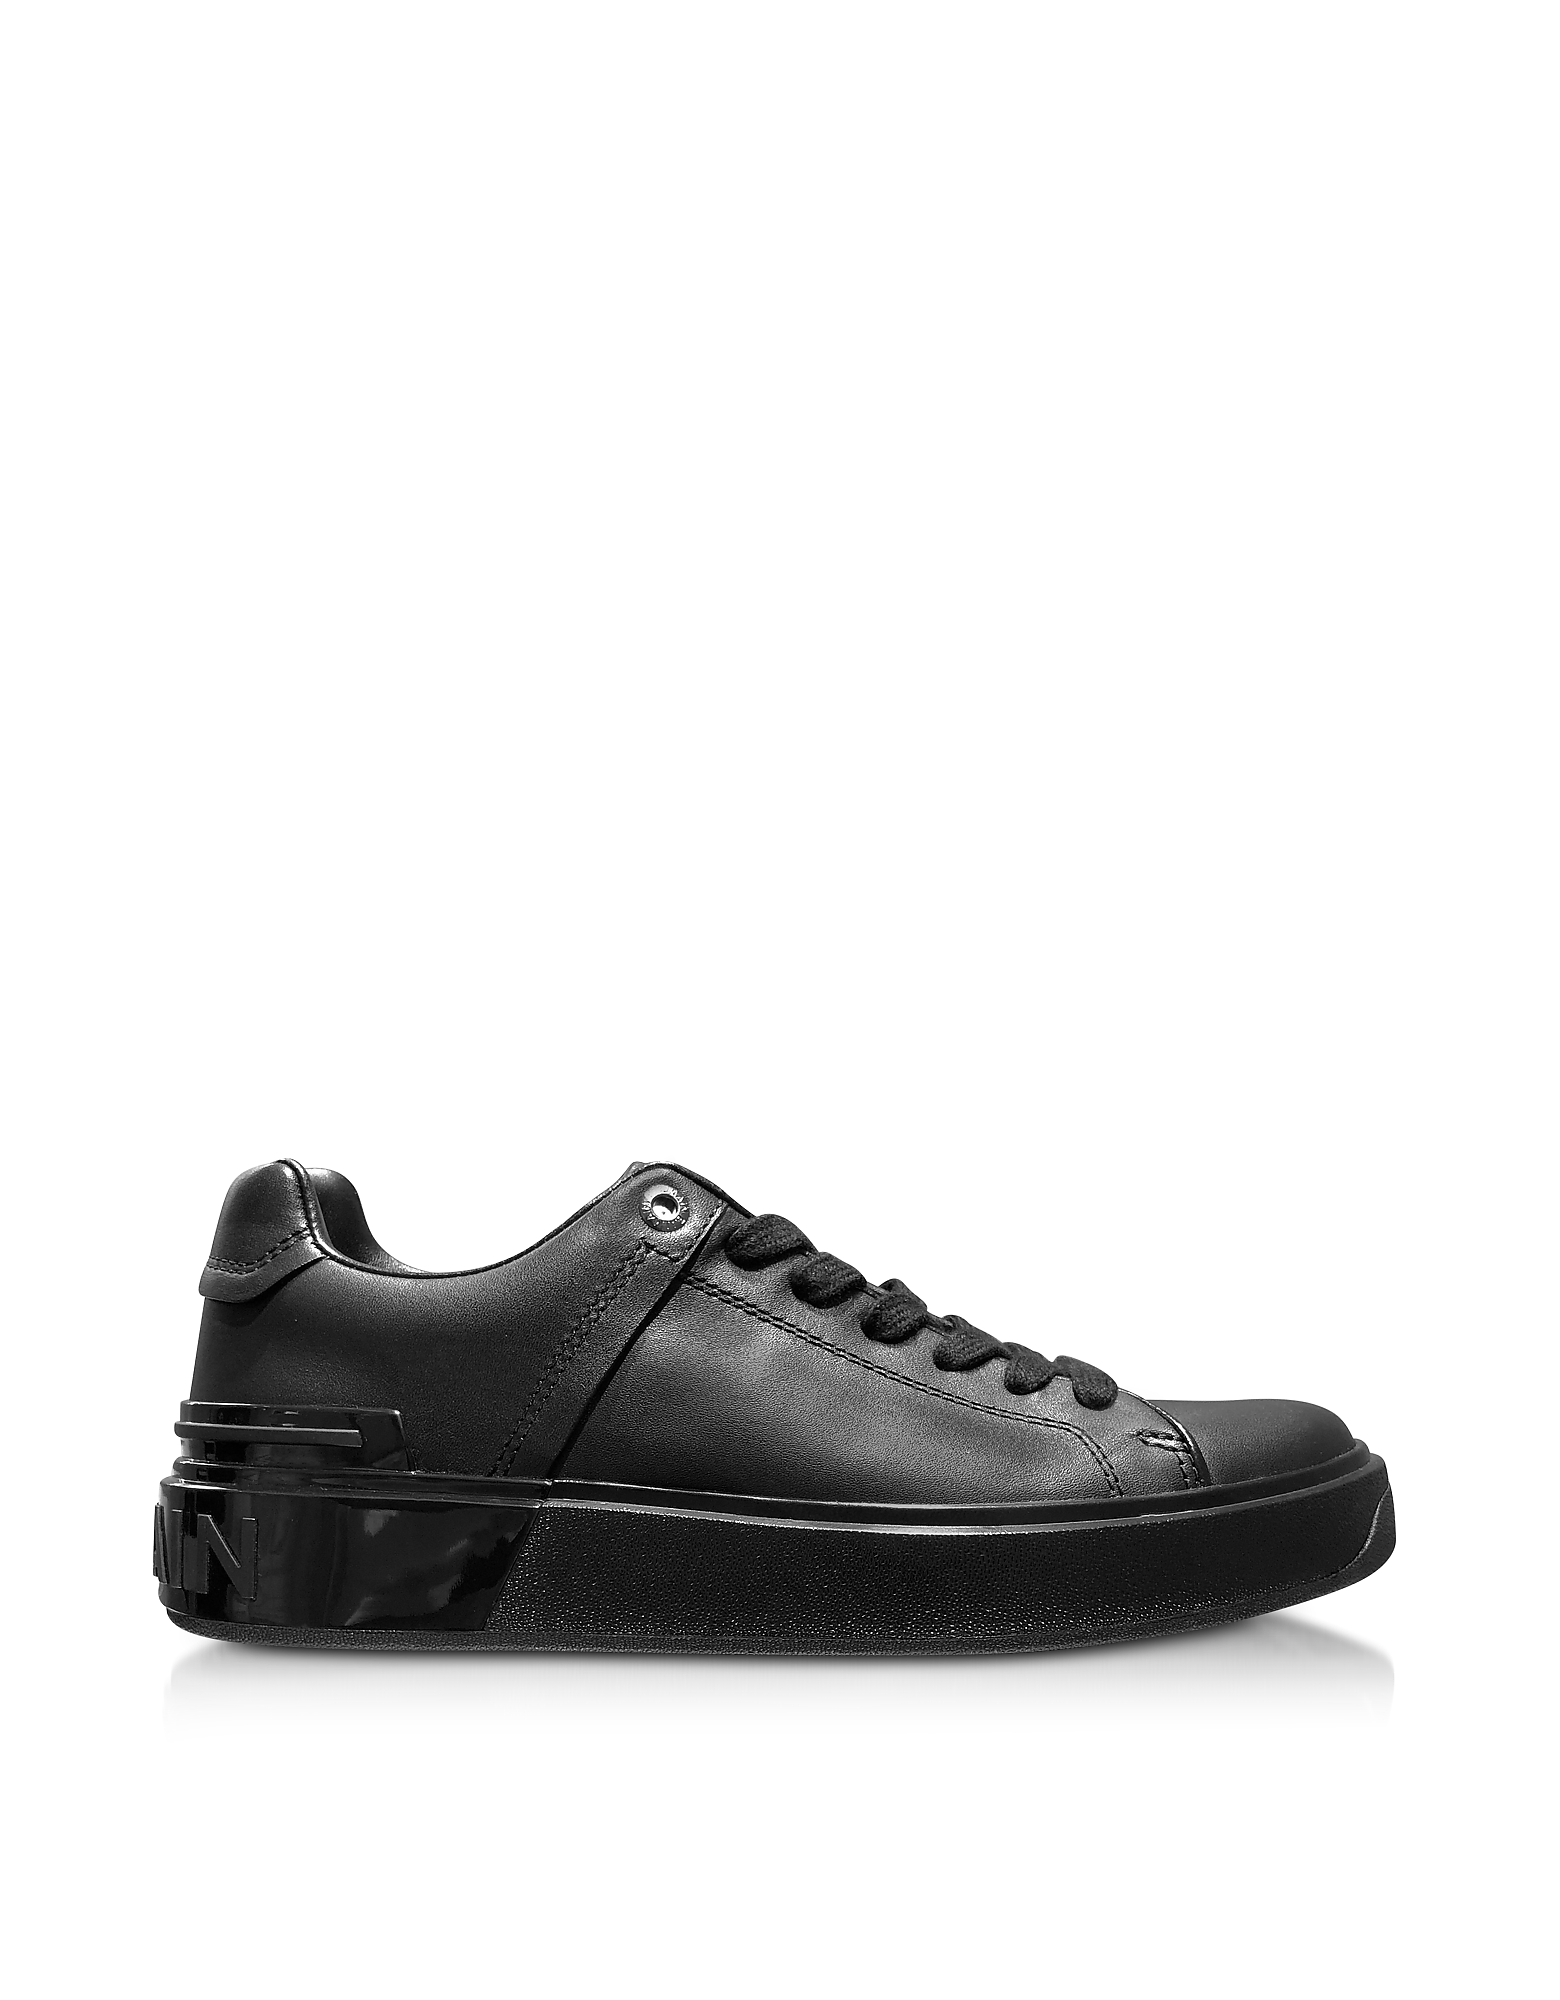 Black Leather Lace up Women's Sneakers